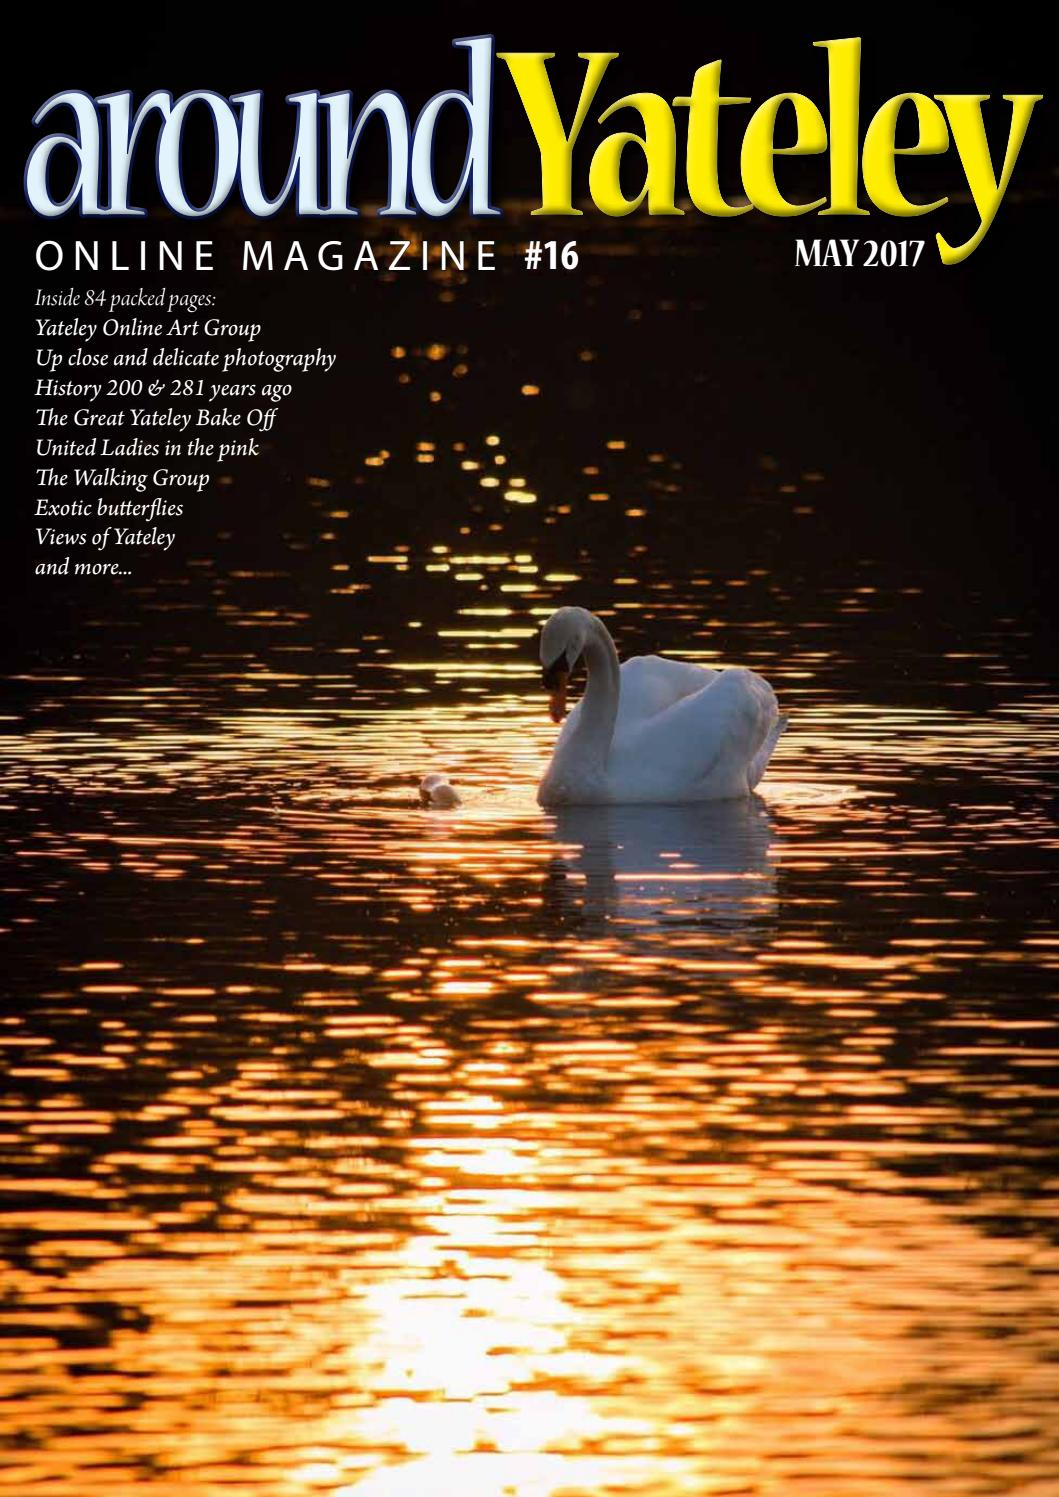 May 2017 Edition By Around Yateley